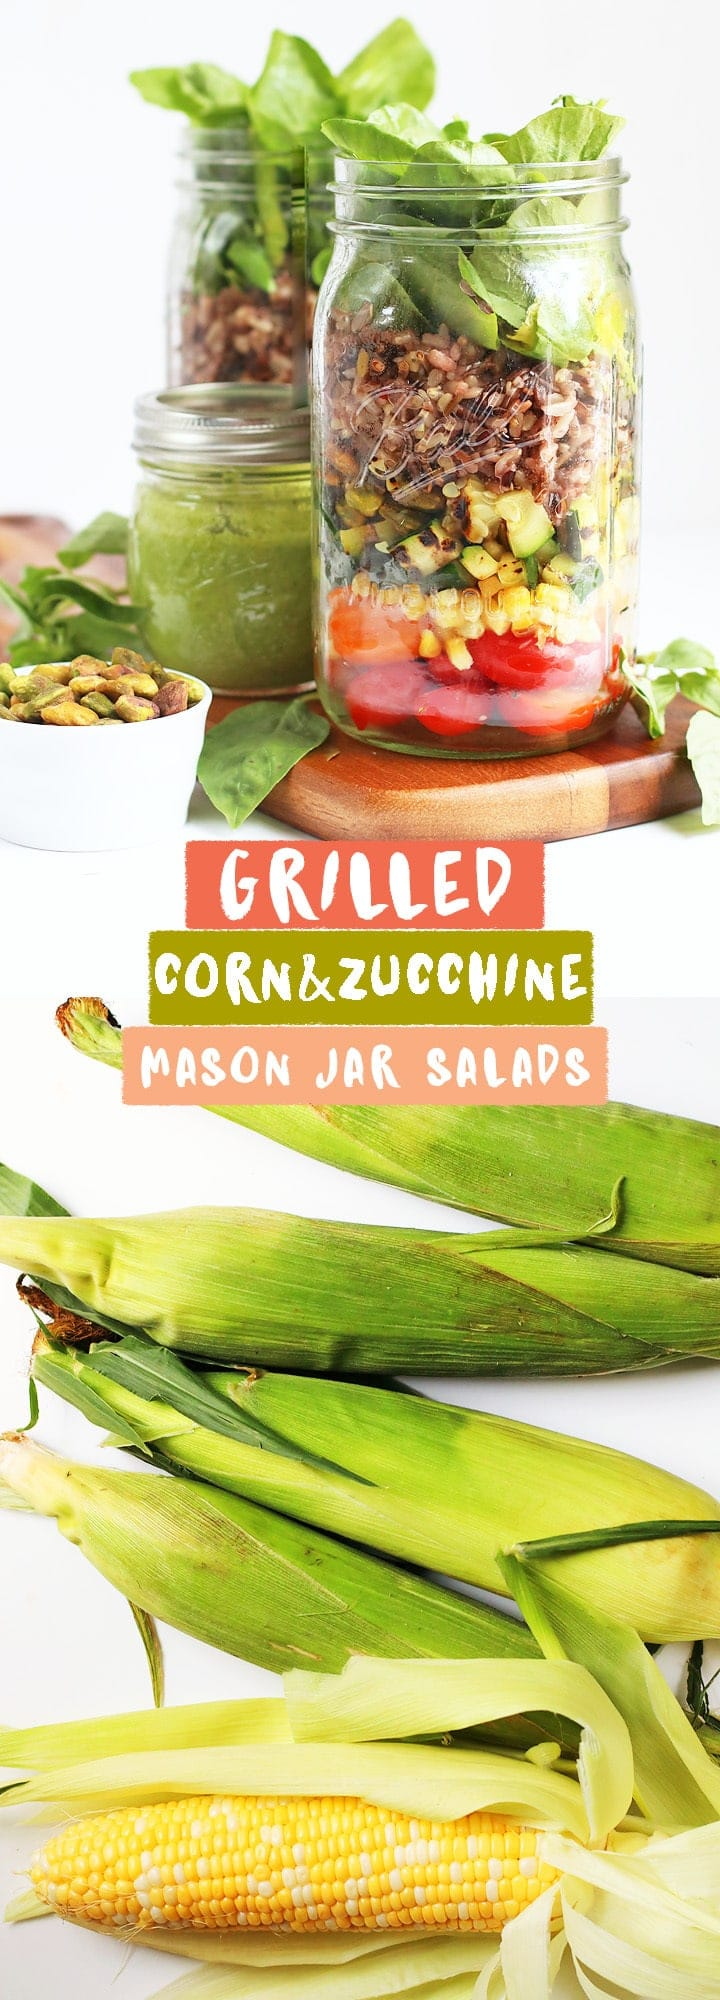 This grilled corn and zucchini mason jar salad is quick, easy, hearty, and healthy. Vegan and gluten-free!